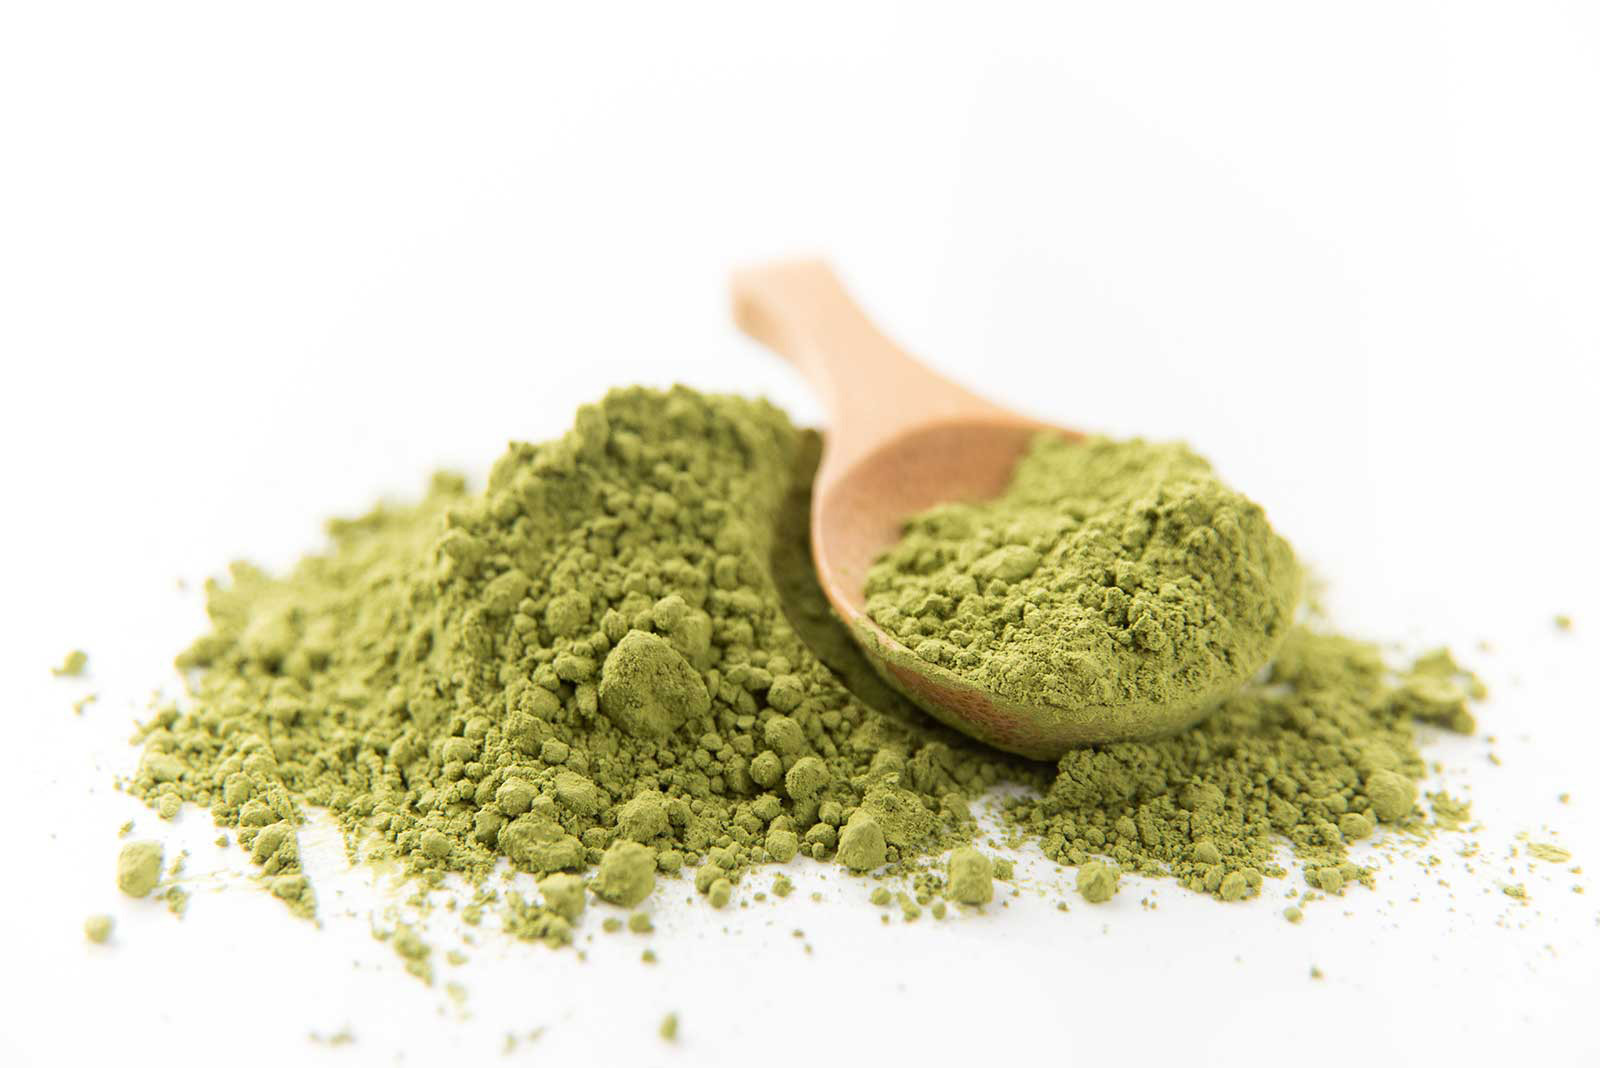 DEA Withdraws Ban on Kratom, Opens Up Public Comment Period